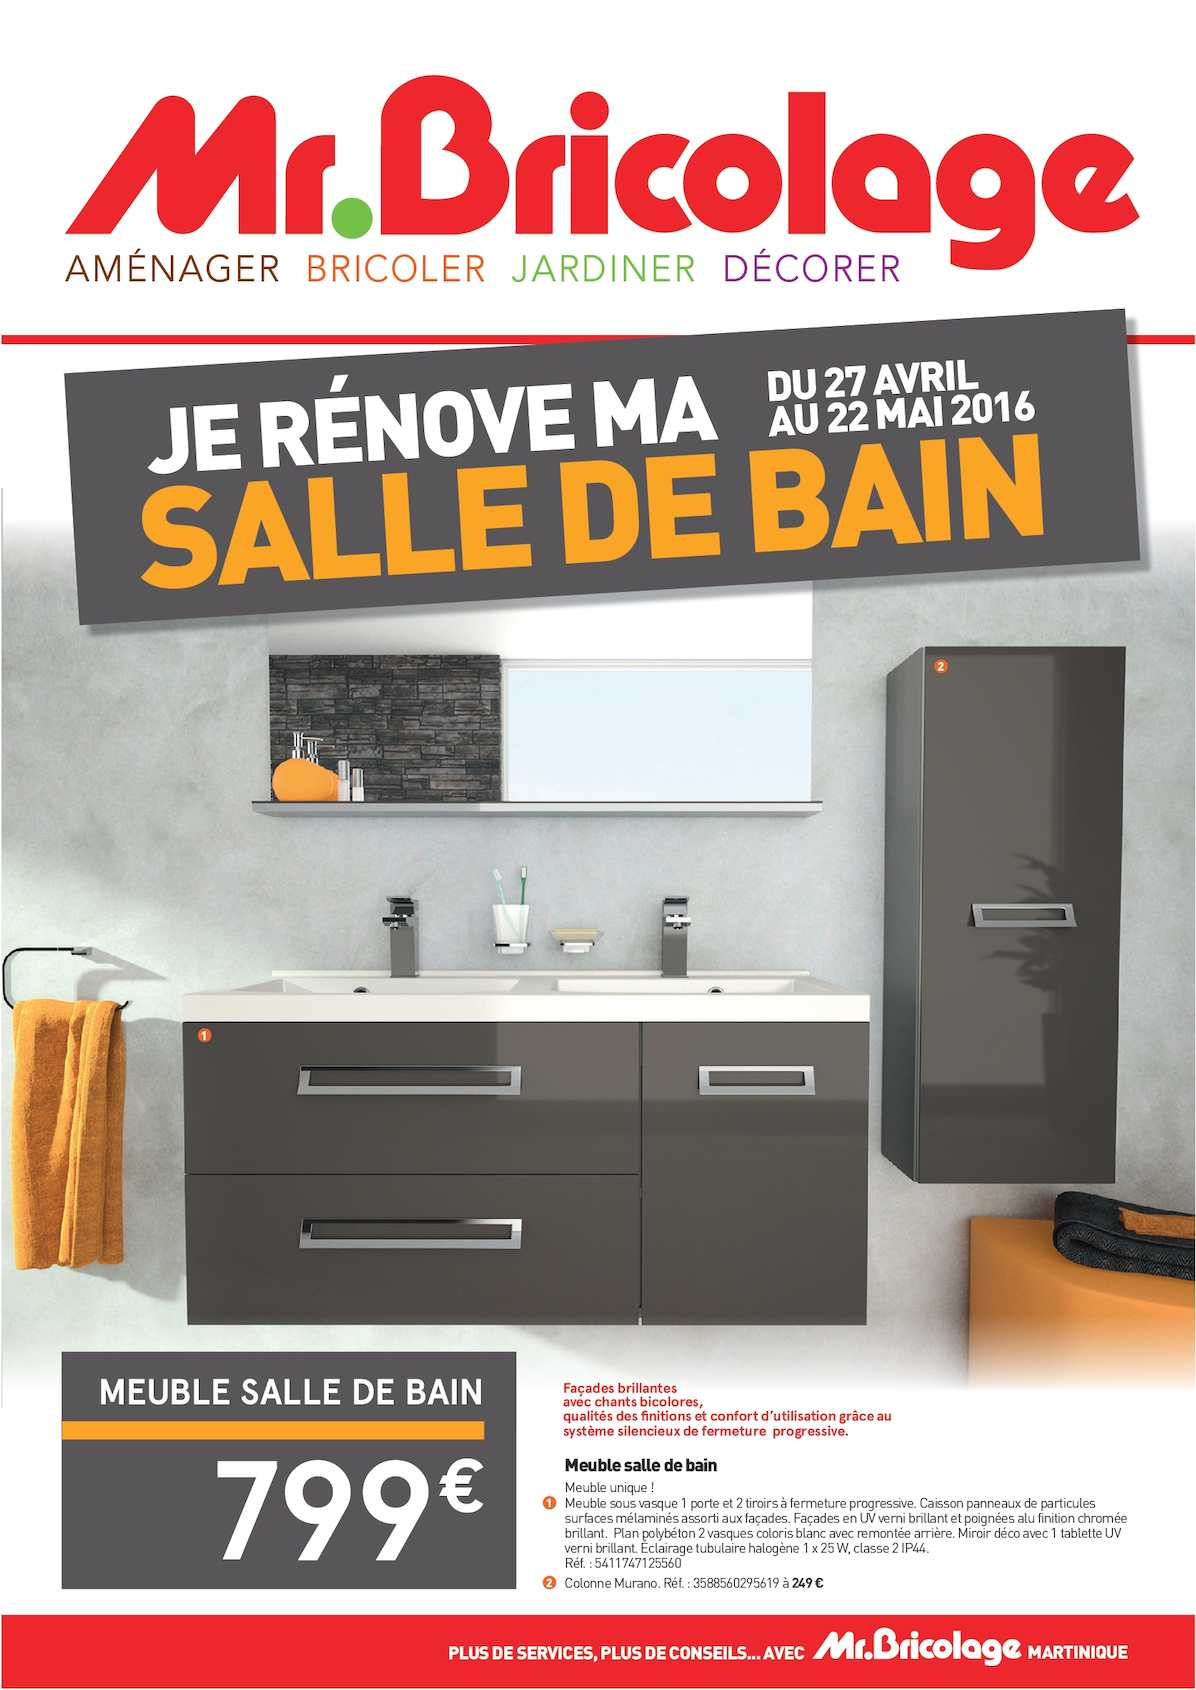 calam o mr bricolage martinique 16pages 27avr 22mai. Black Bedroom Furniture Sets. Home Design Ideas